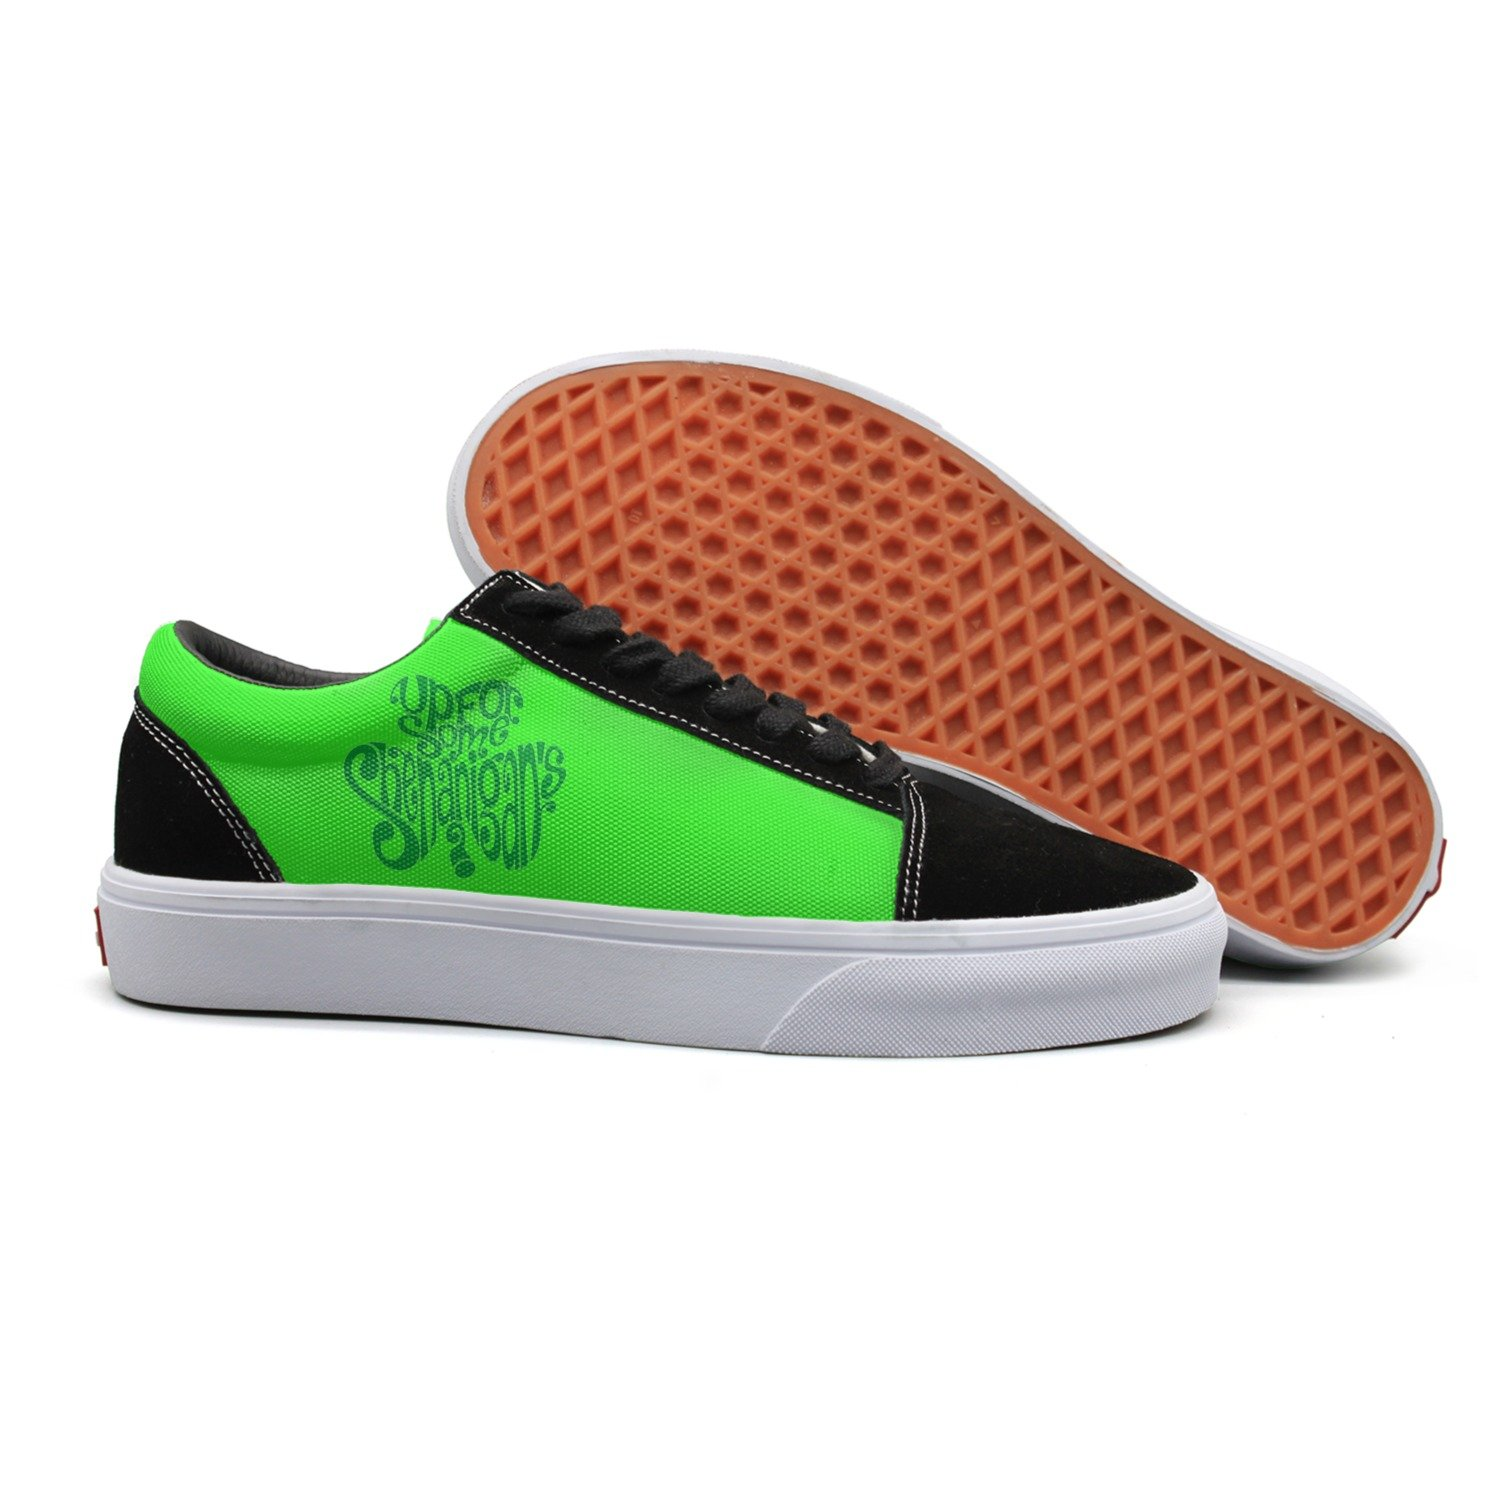 Patricks Day Walking Shoes Fashio Canvas Shoes For Women Happy St